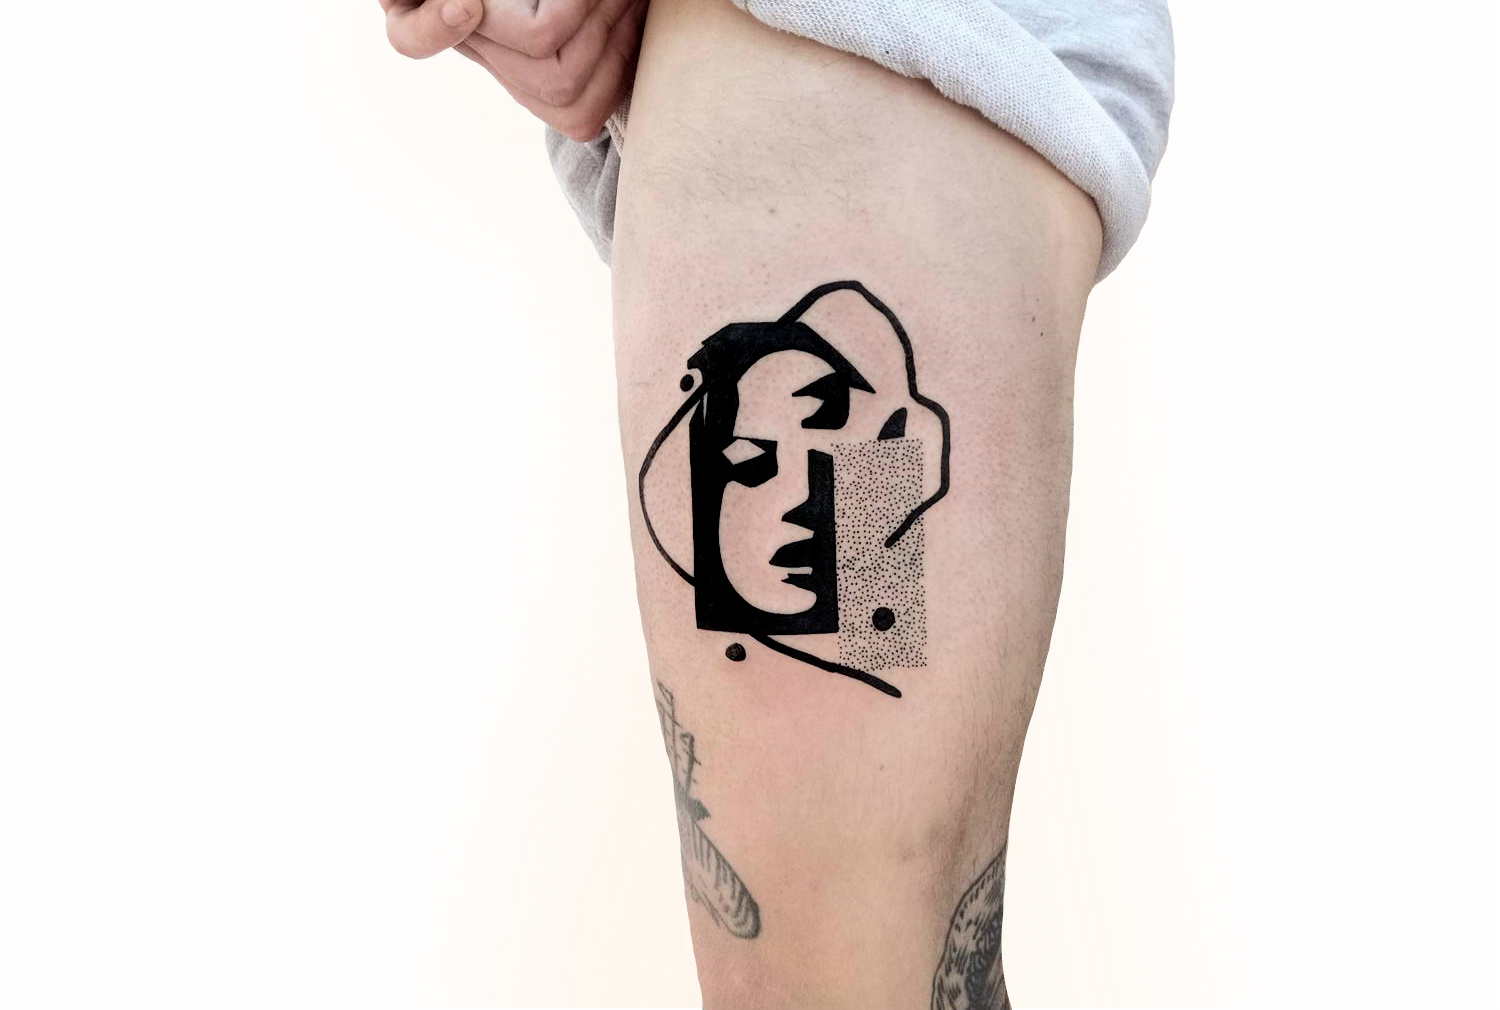 Pop art silhouette portrait tattoo by Andrey Volkov